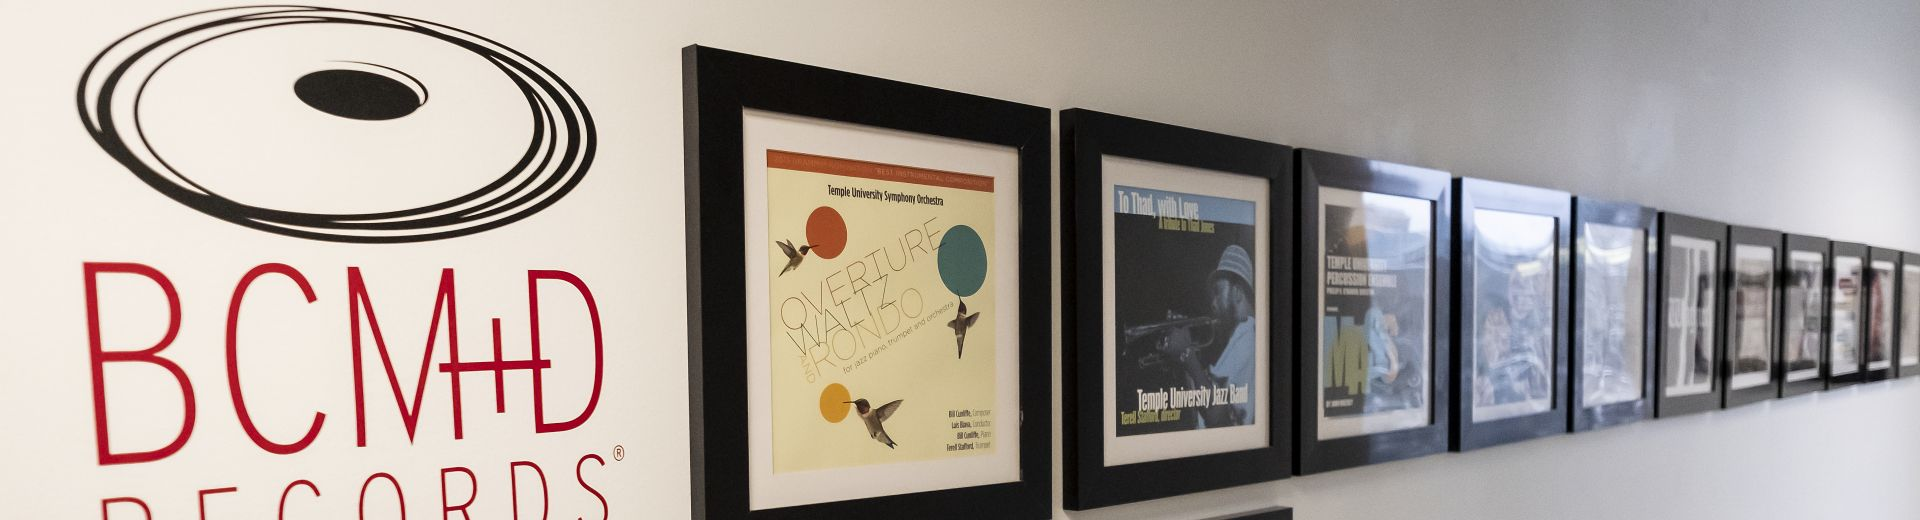 Wall with BCM&D logo and line of framed album covers